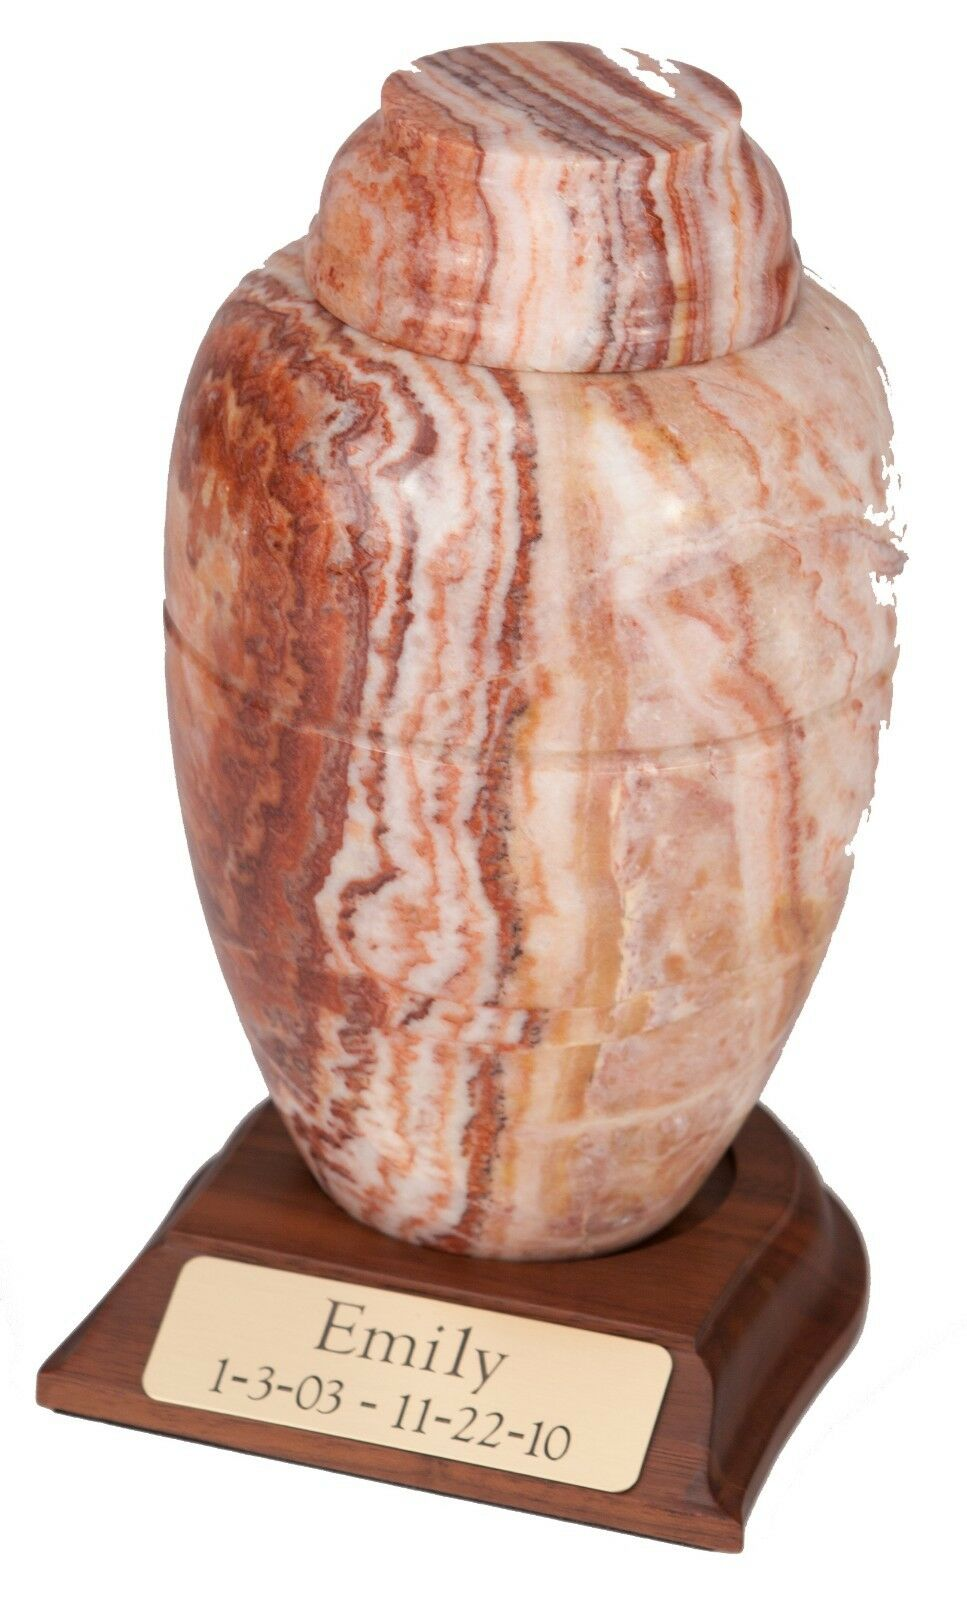 Large 168 Cubic Inches Caramel Marble Vase Urn for Ashes with Engravable Base